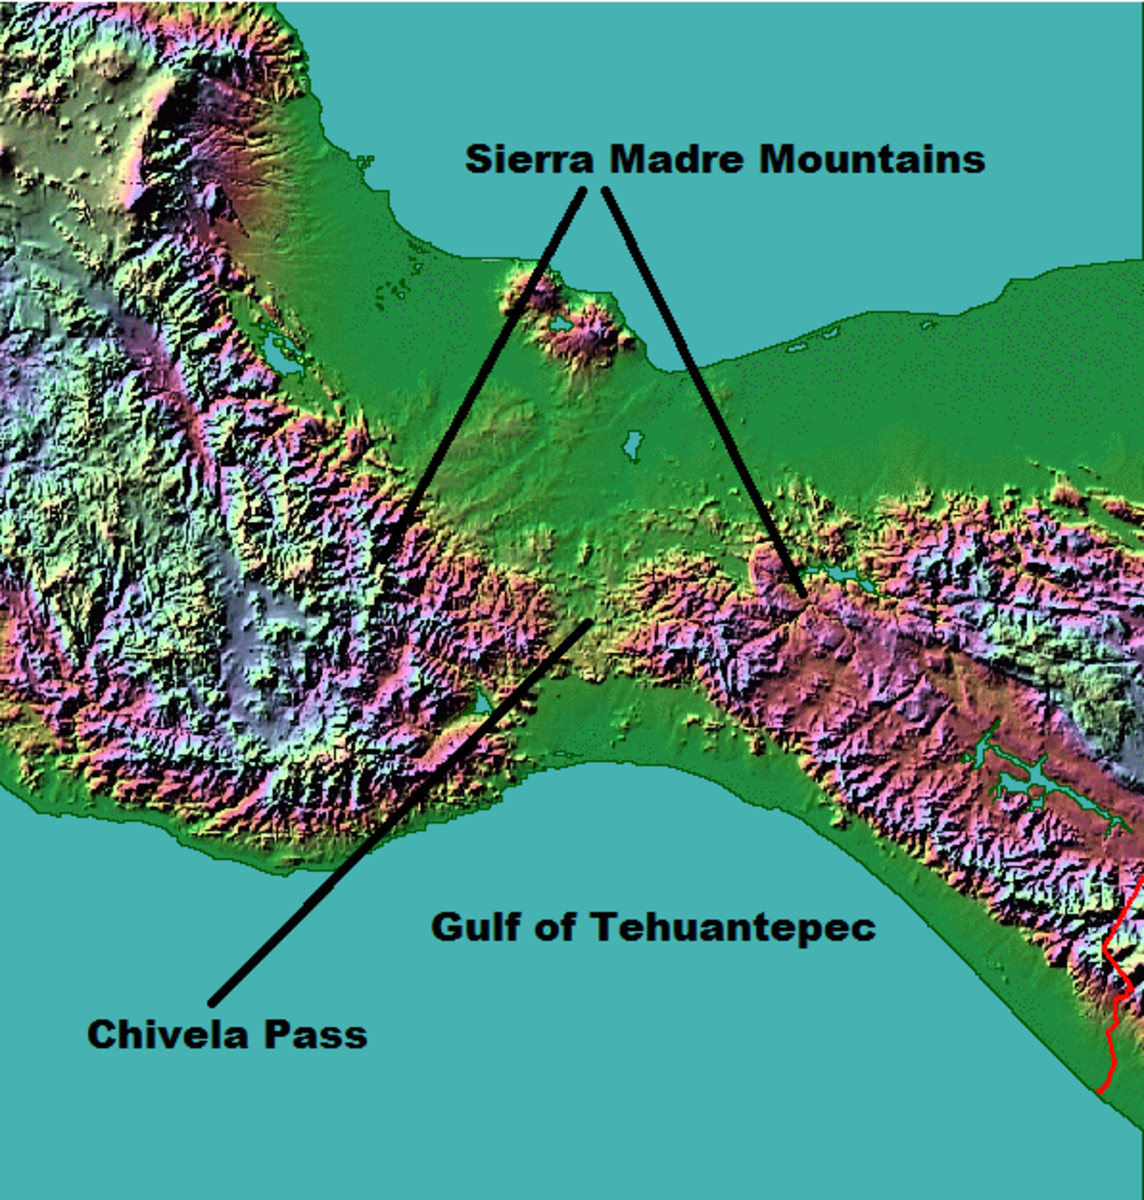 Winds piling onto the Gulf of Mexico side intensify when forced through the narrow Chivela Pass, creating gale force winds on the Gulf of Tehuantepec.